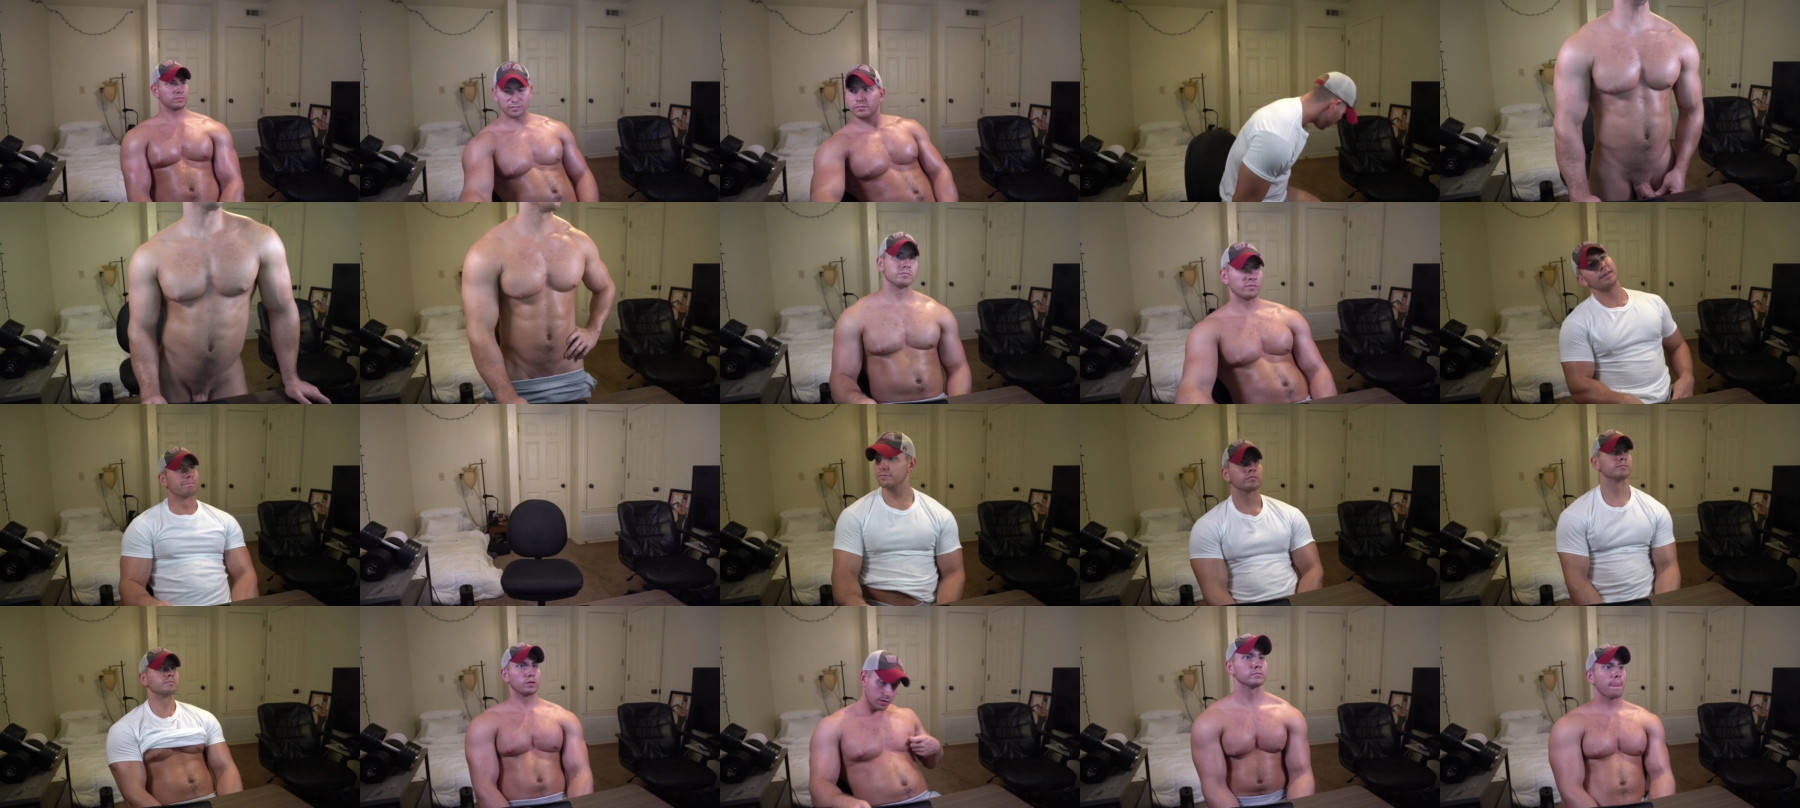 Hotmuscles6t9 Wet CAM SHOW @ Chaturbate 10-05-2021